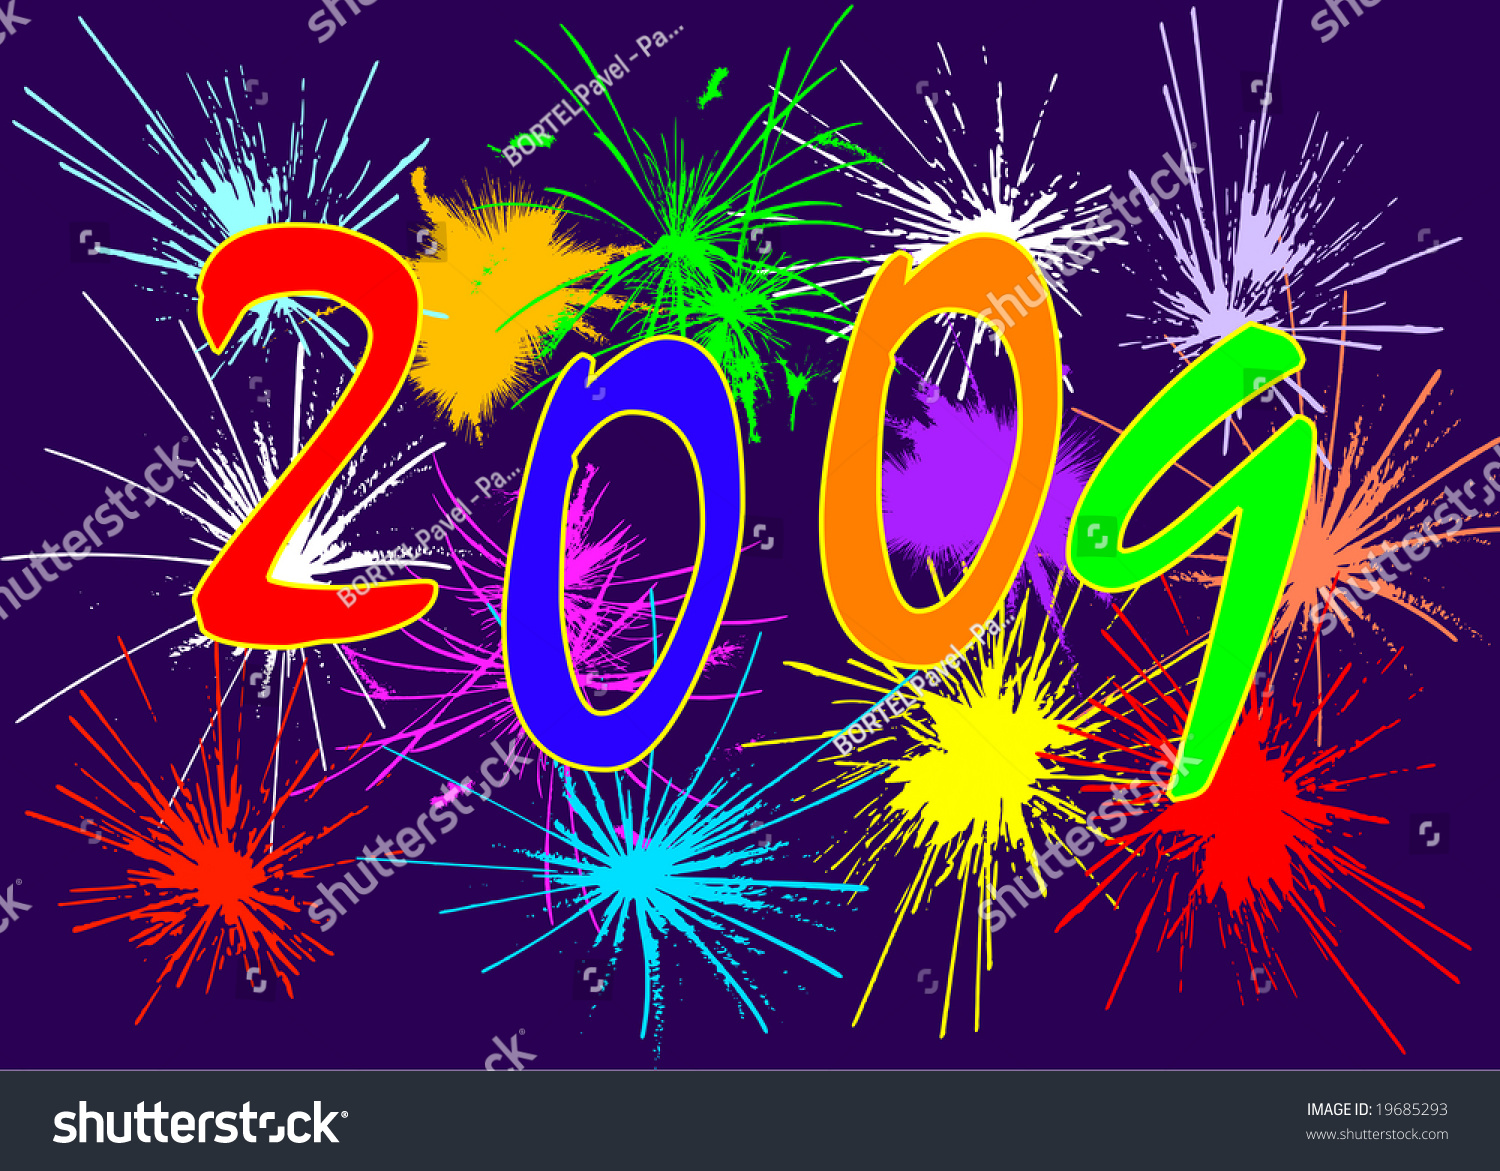 2019 2019 New Years New Year, New Year, Red Envelope, Jujube PNG  Transparent Clipart Image and PSD File for Free Download